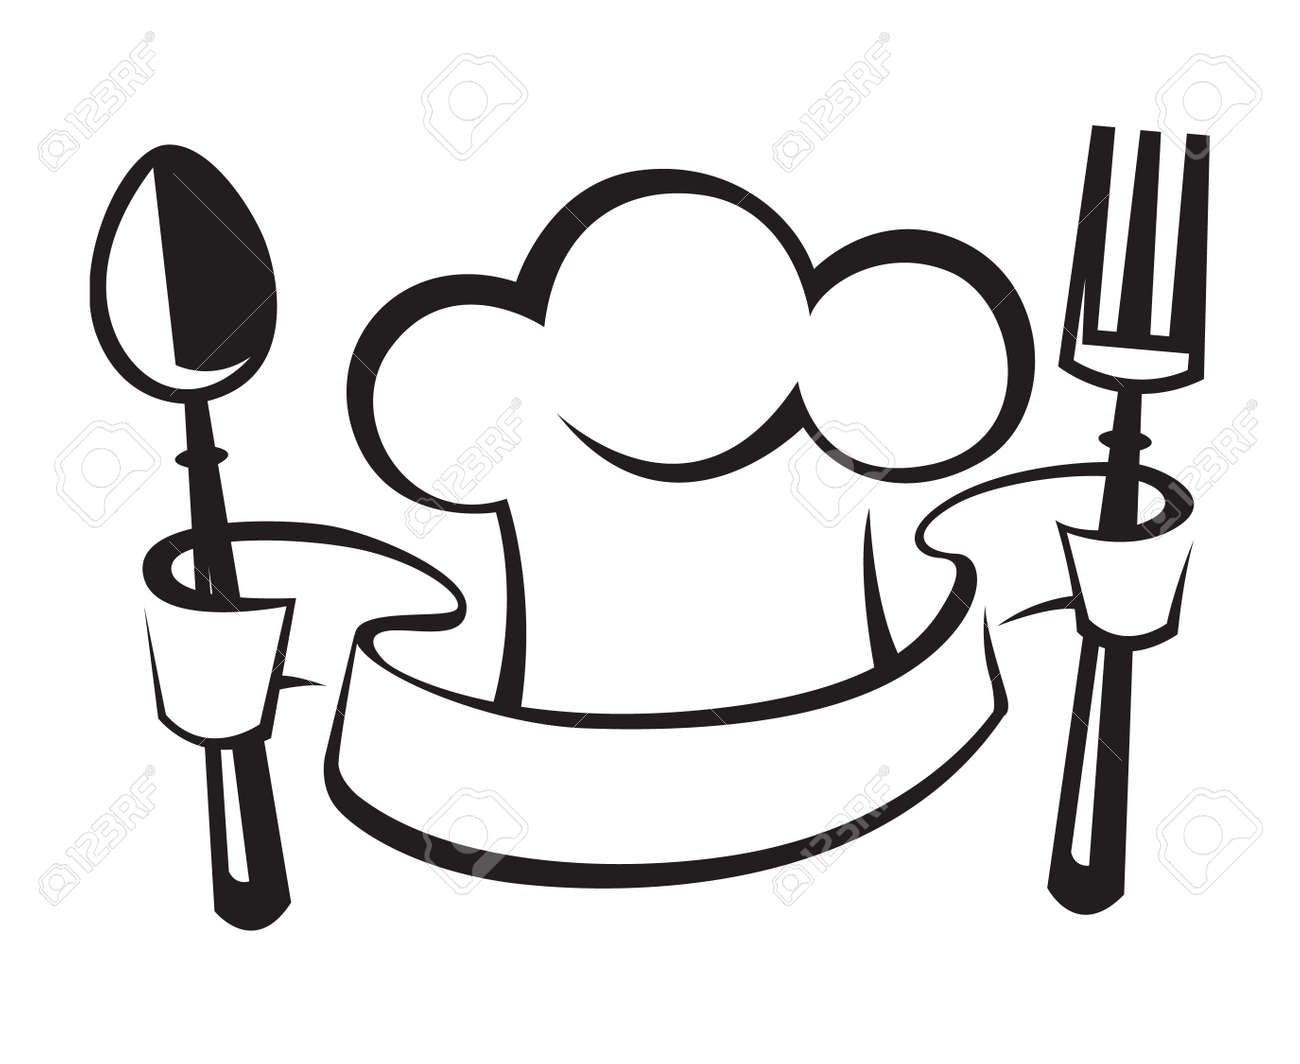 hight resolution of chef hat spoon and fork royalty free cliparts vectors and stock jpg 1300x1063 chef hat clipart